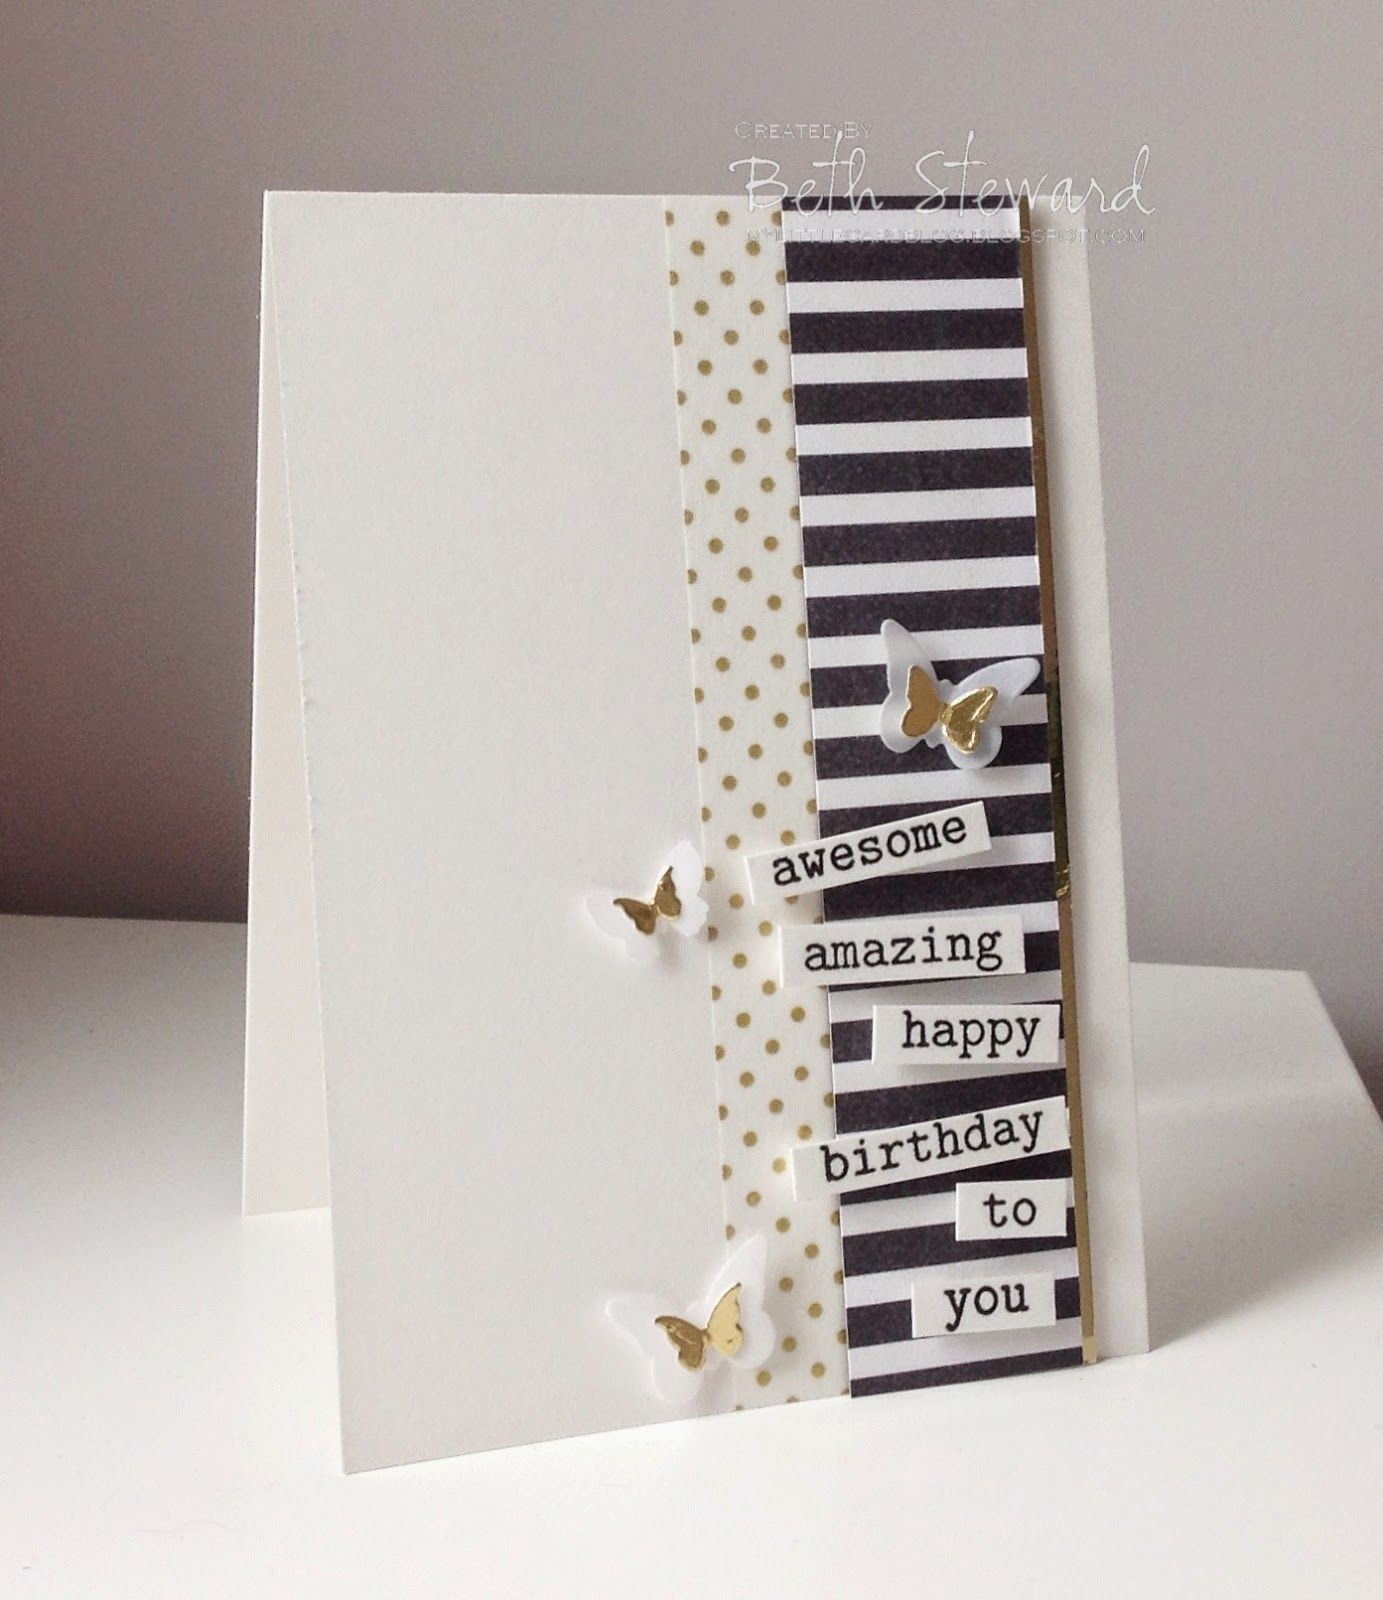 Bethus Little Card Blog Cards Clean and Simple II Pinterest